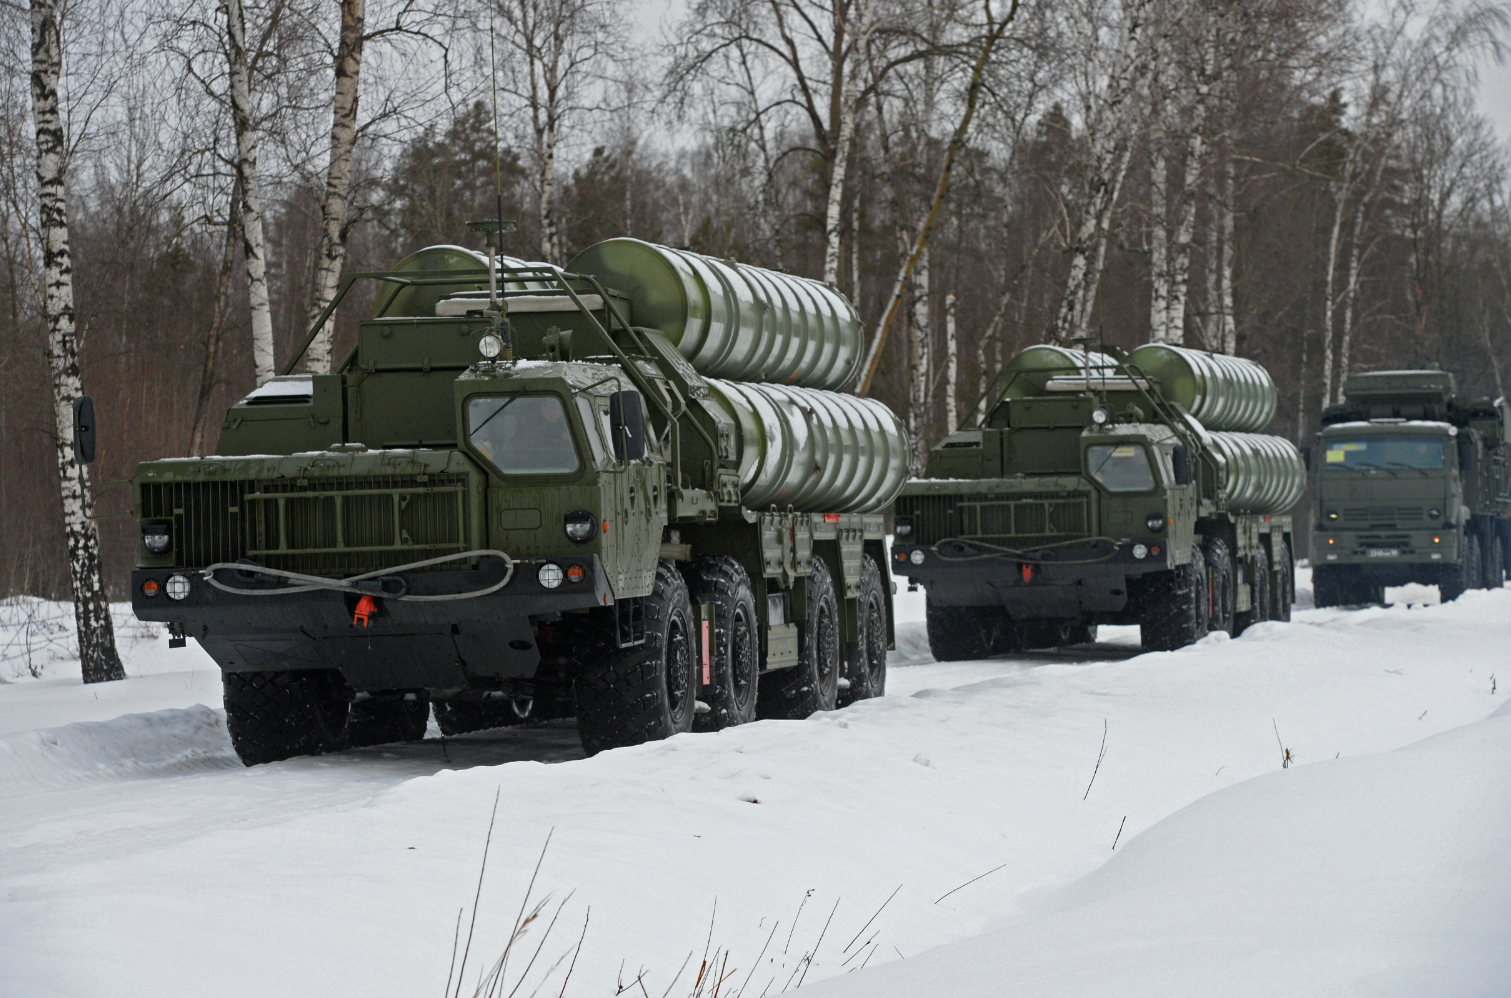 S-400 Triumf is Russia's long-range anti-aircraft missile system that went into service in 2007. Source: Mikhail Voskresenskiy/RIA Novosti